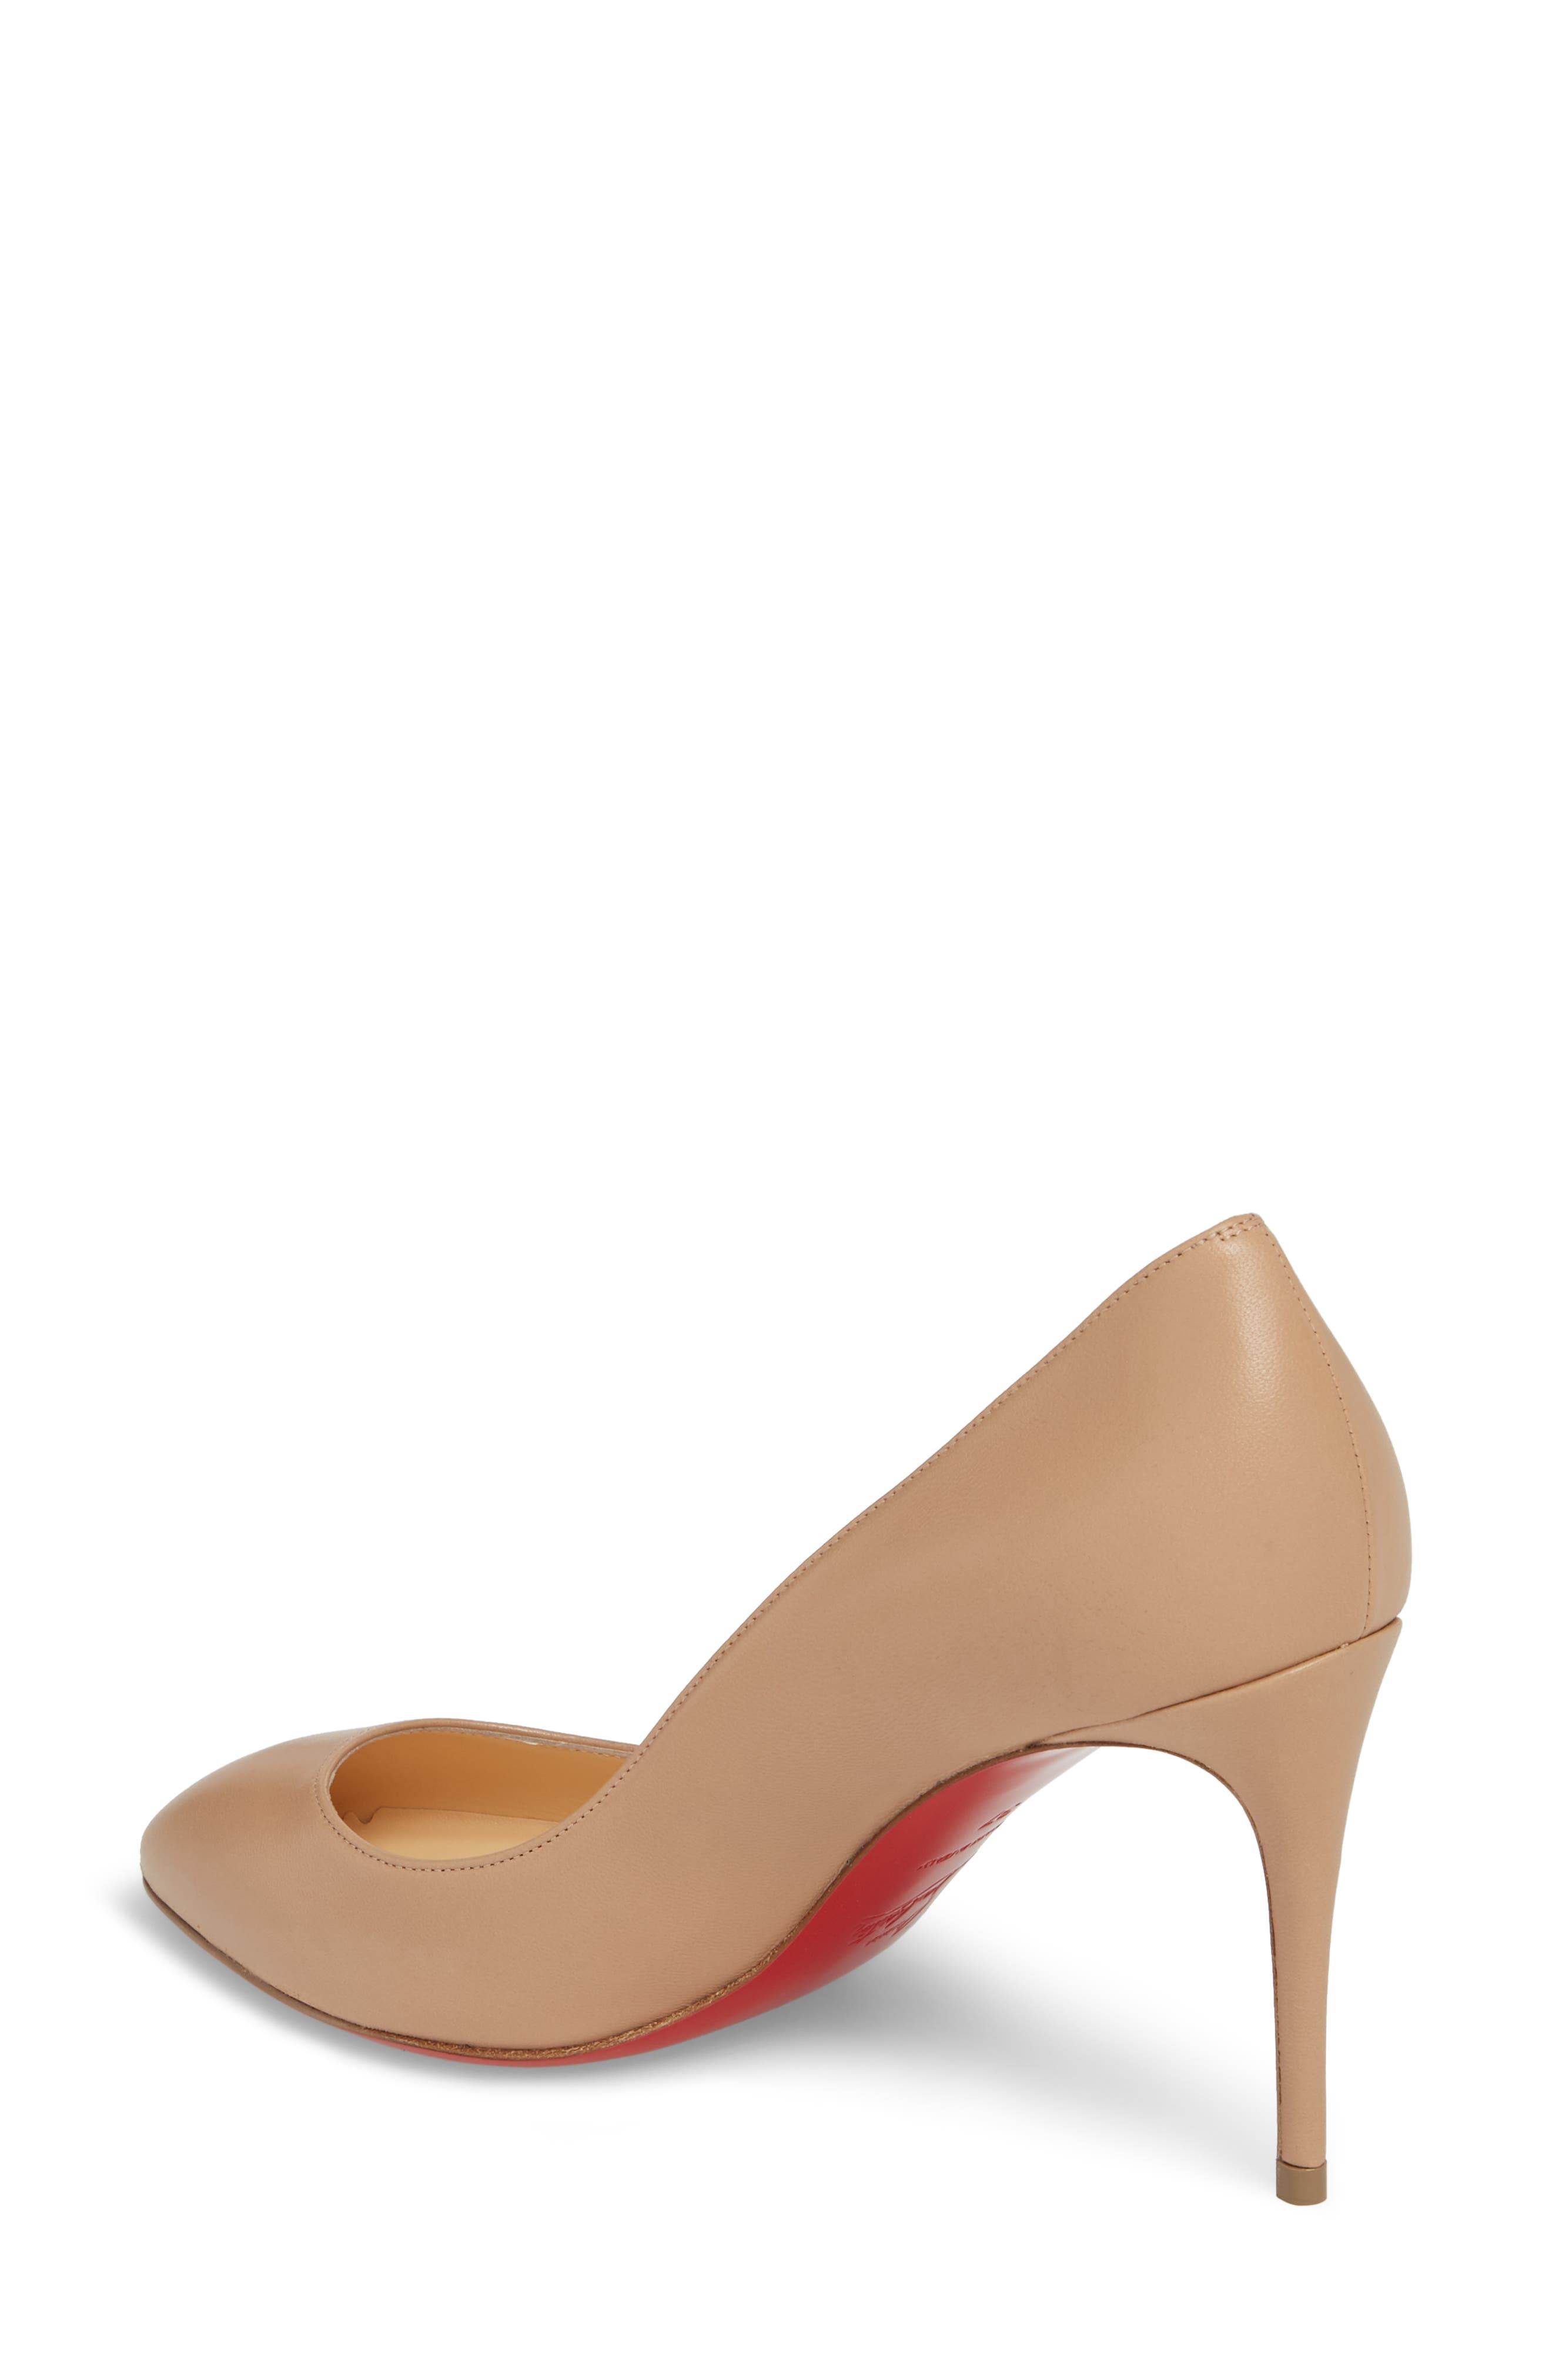 CHRISTIAN LOUBOUTIN ELOISE 85MM NAPA LEATHER RED SOLE PUMPS, NUDE